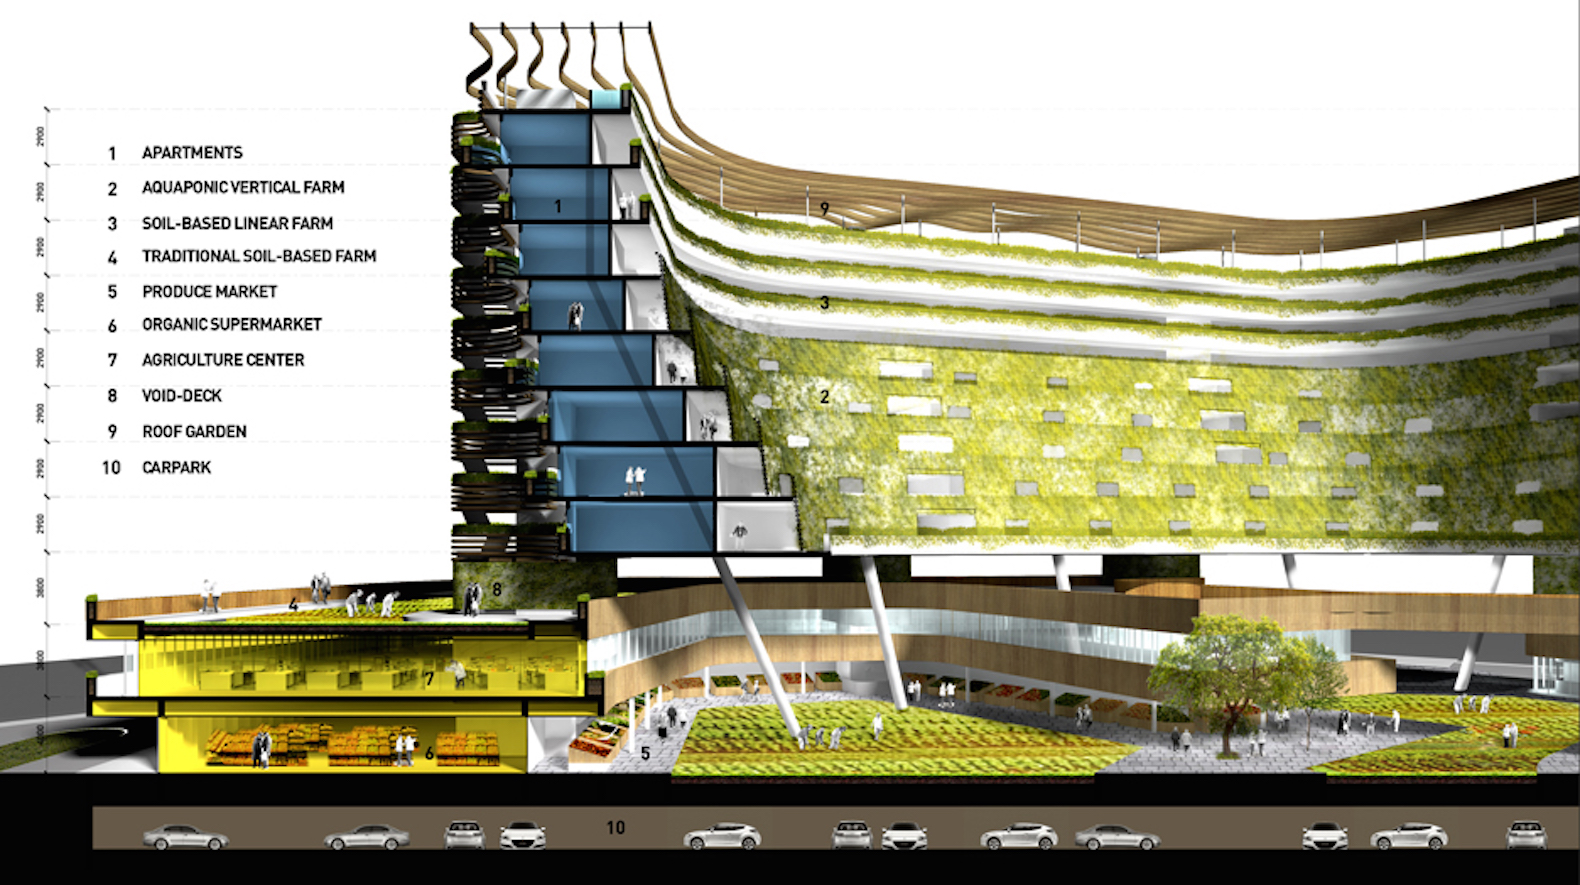 Retirement Homes And Vertical Urban Farms